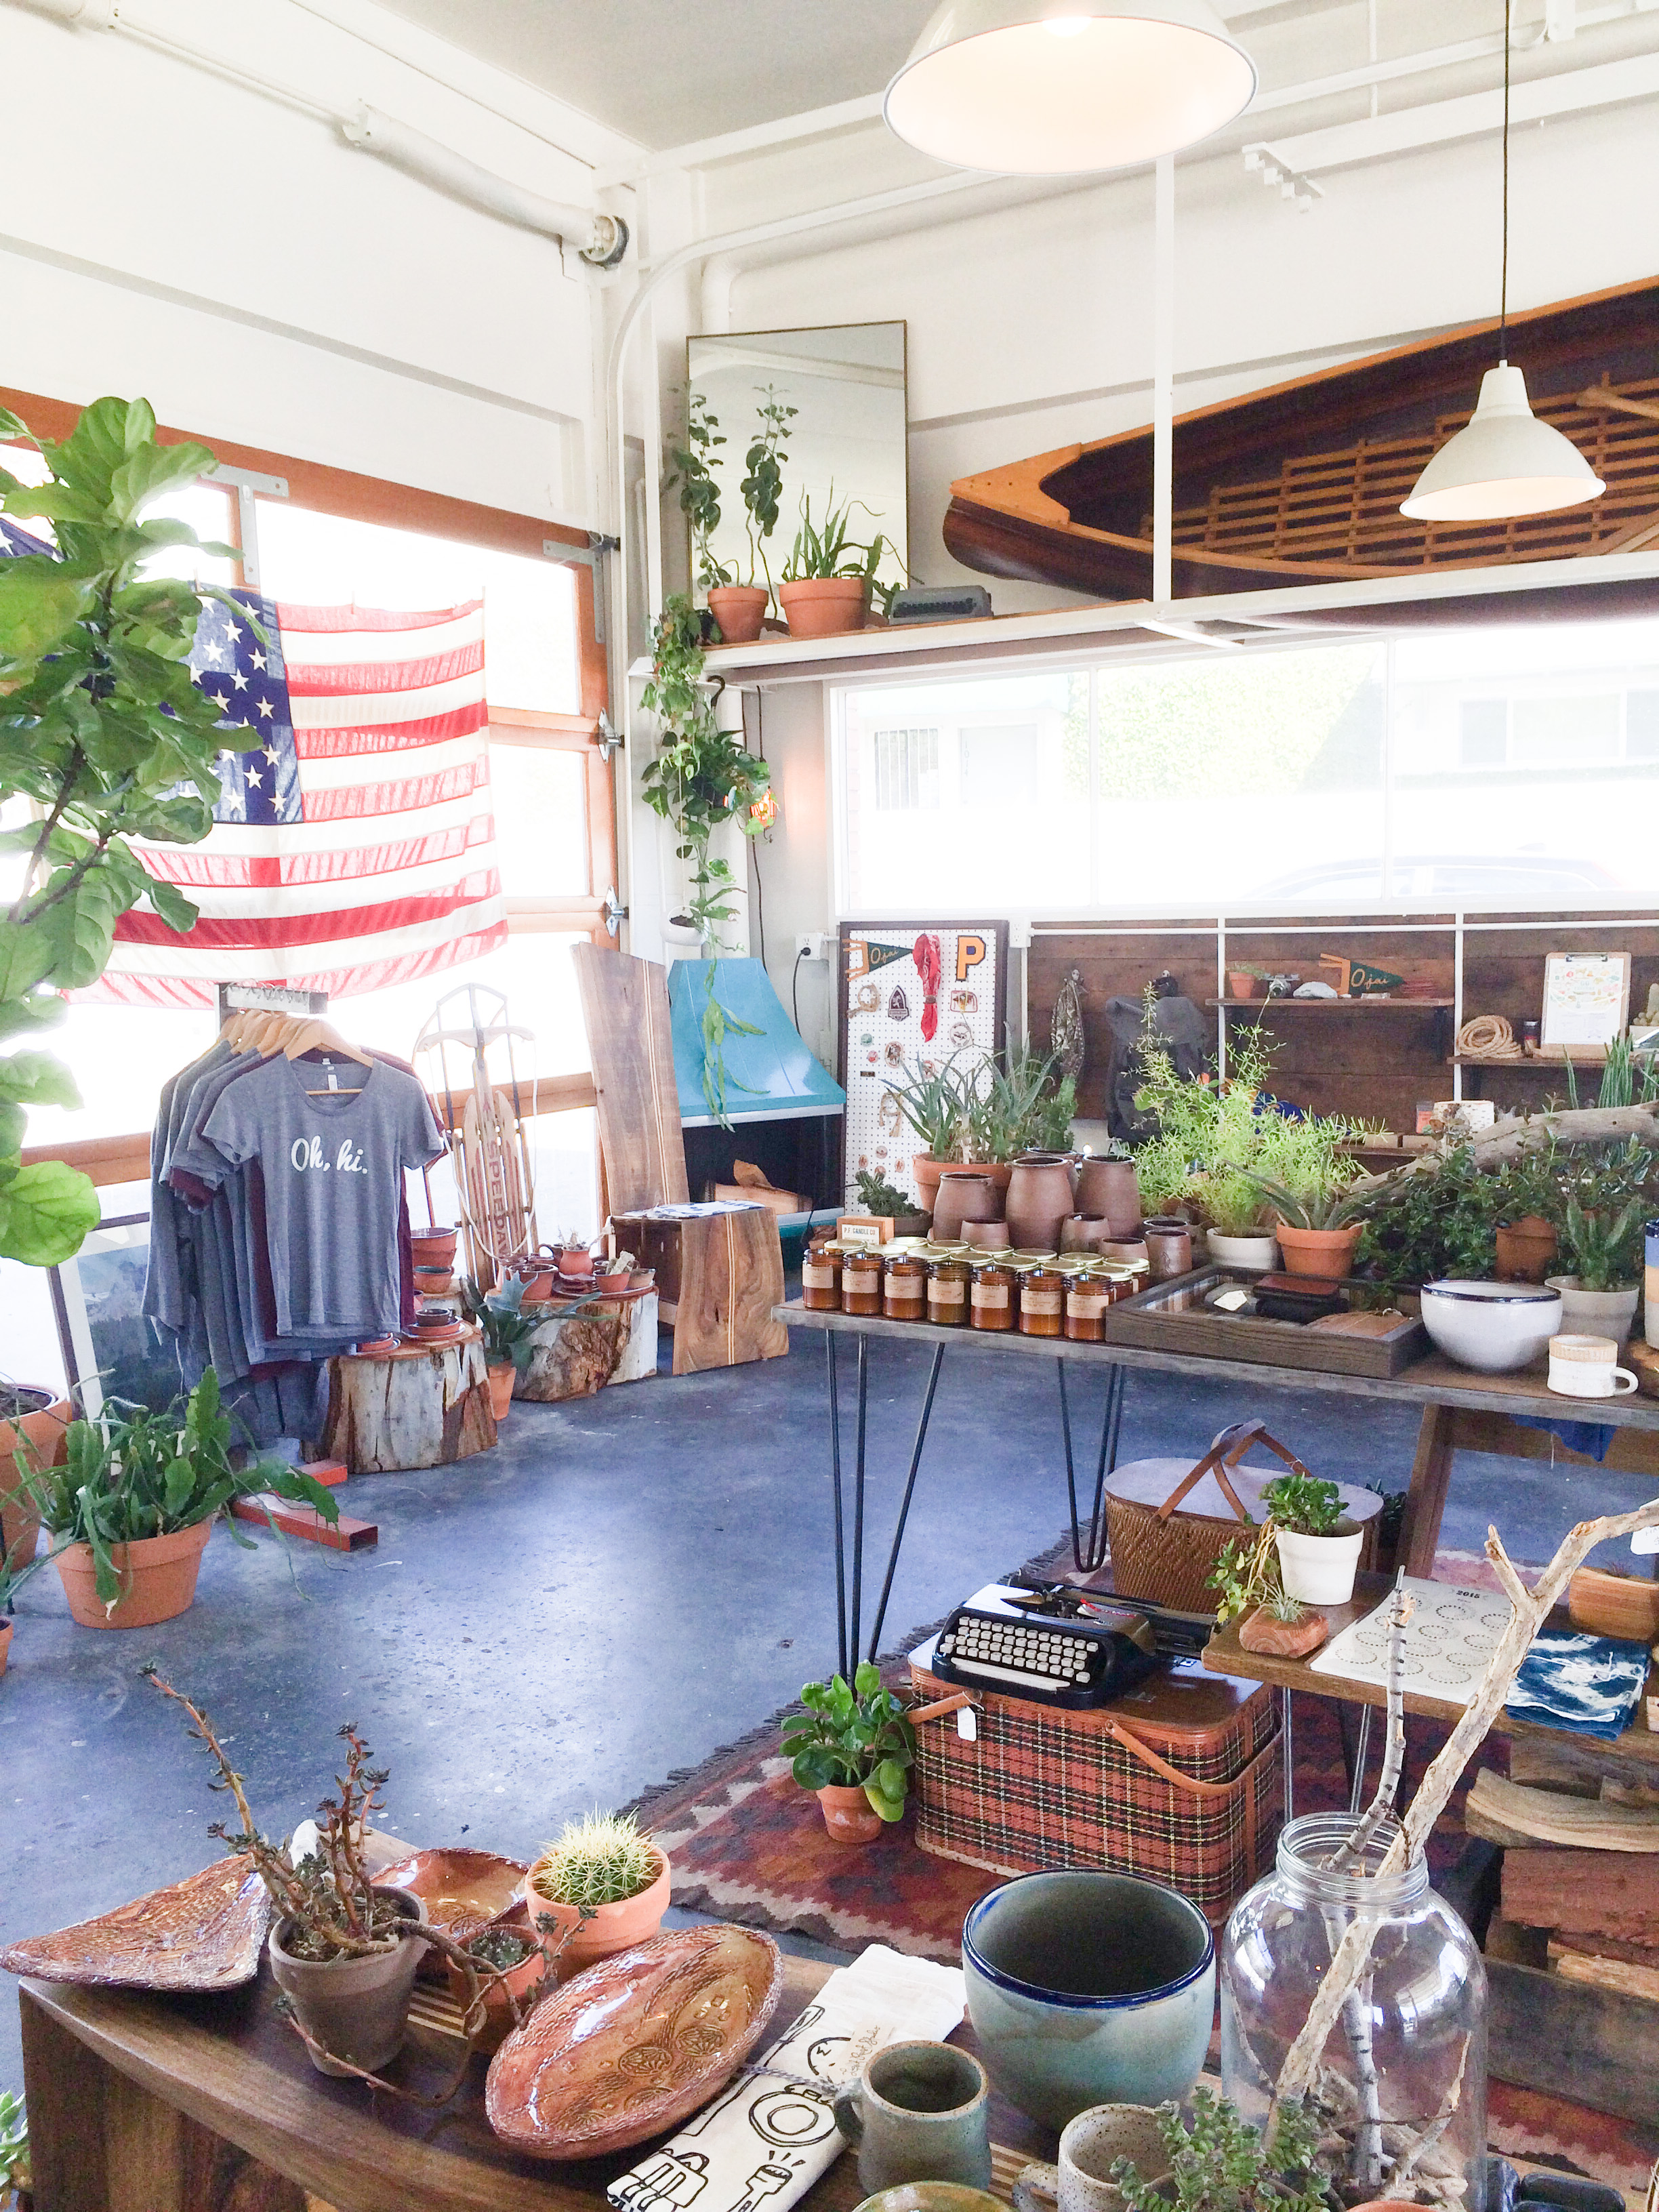 Ojai City Guide - Legal Miss Sunshine